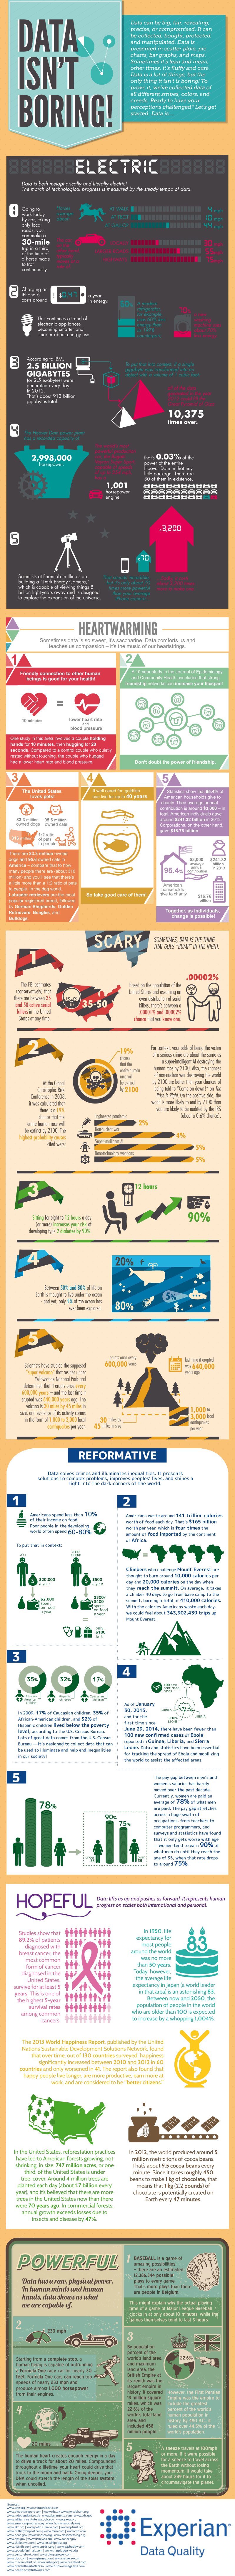 Why Data Actually Makes For An Interesting Read - Infographic